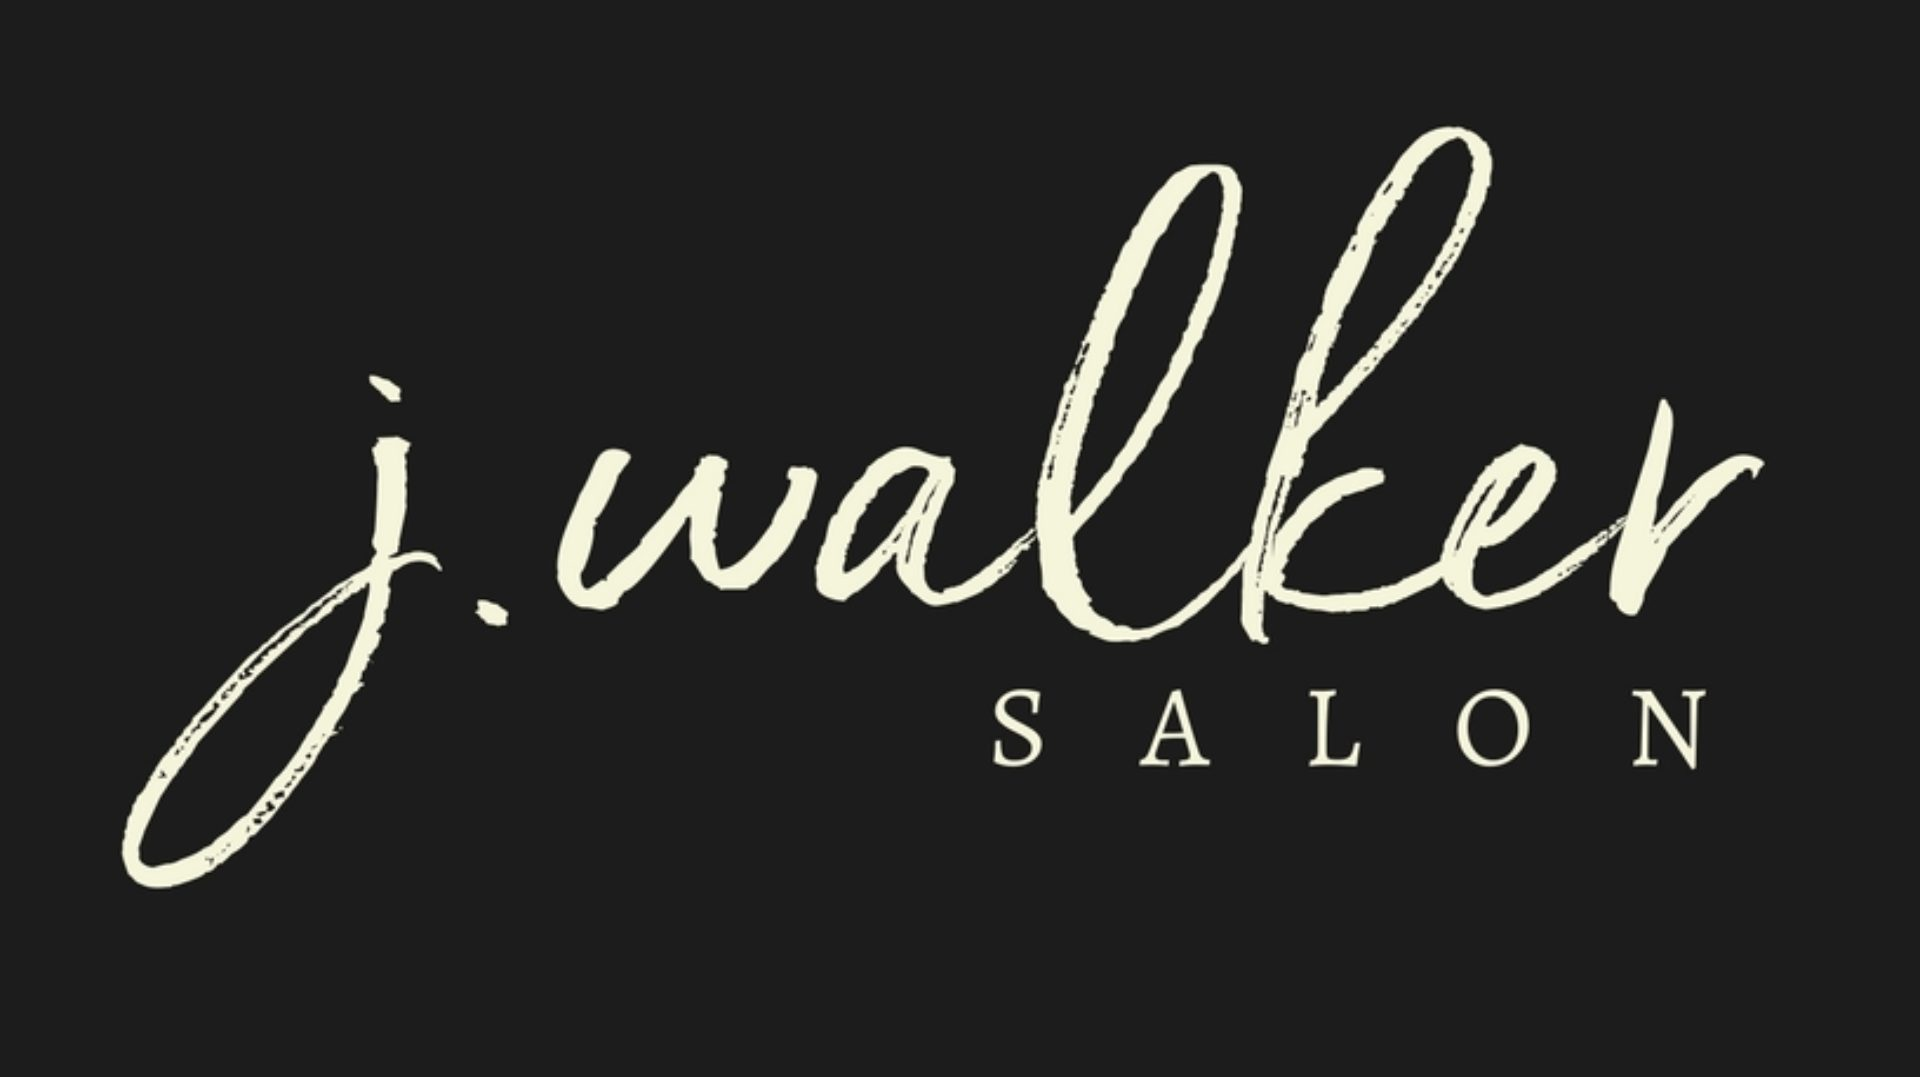 J.Walker Salon & Spa